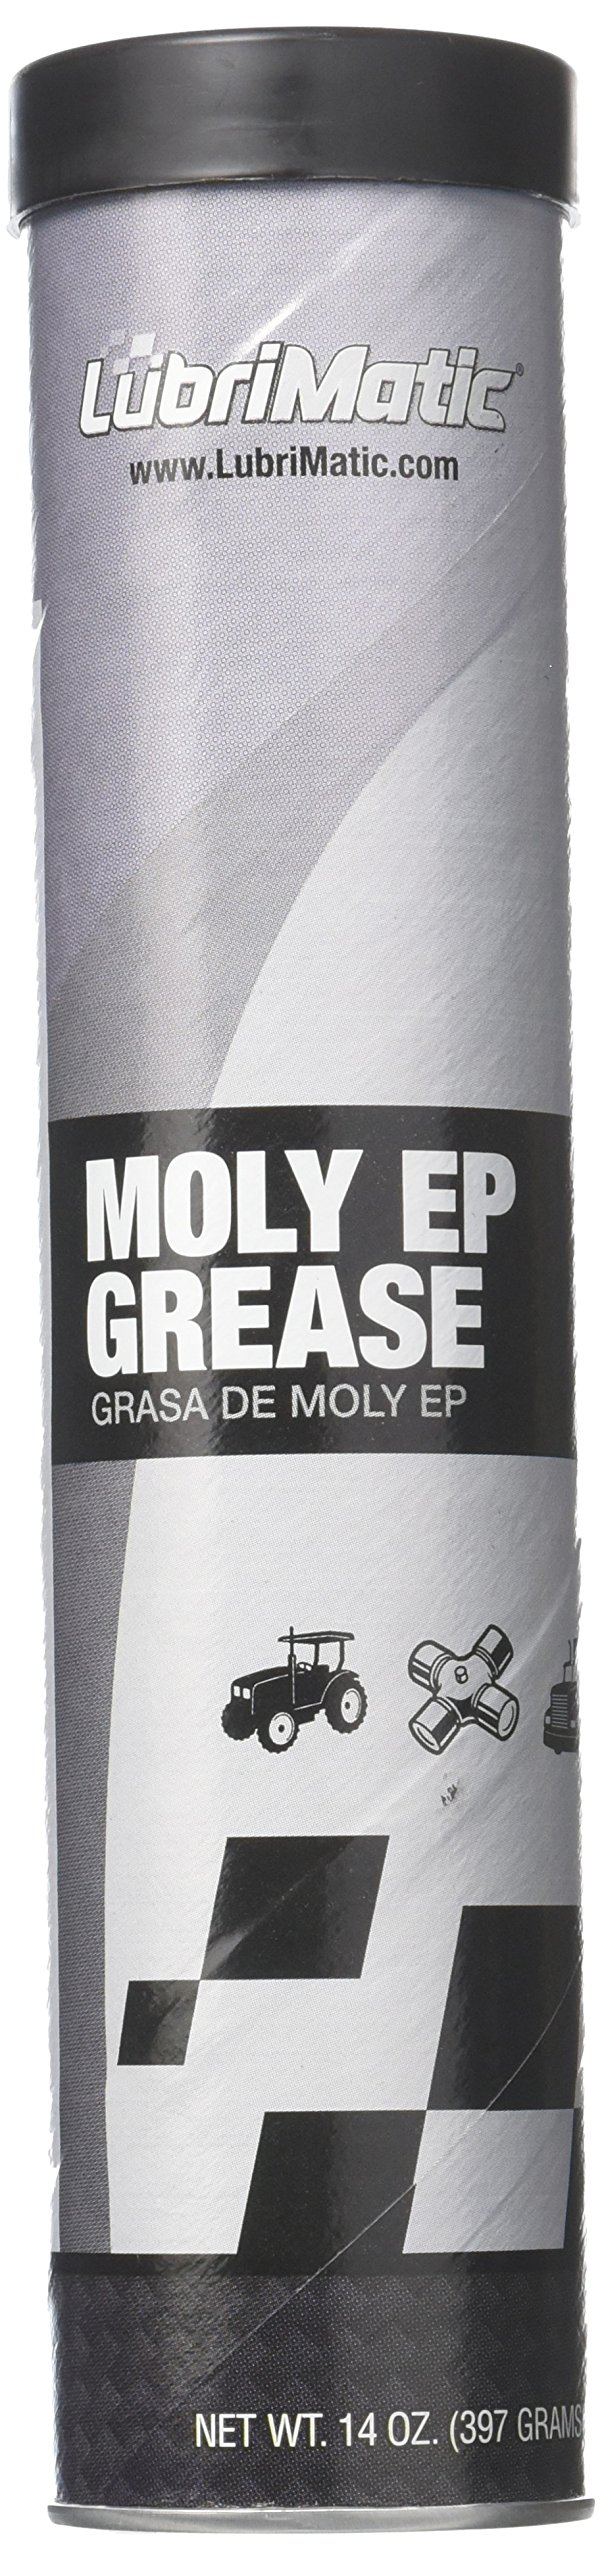 LubriMatic 11335 1 Pack Moly EP Grease, 14 Oz. Cartridge